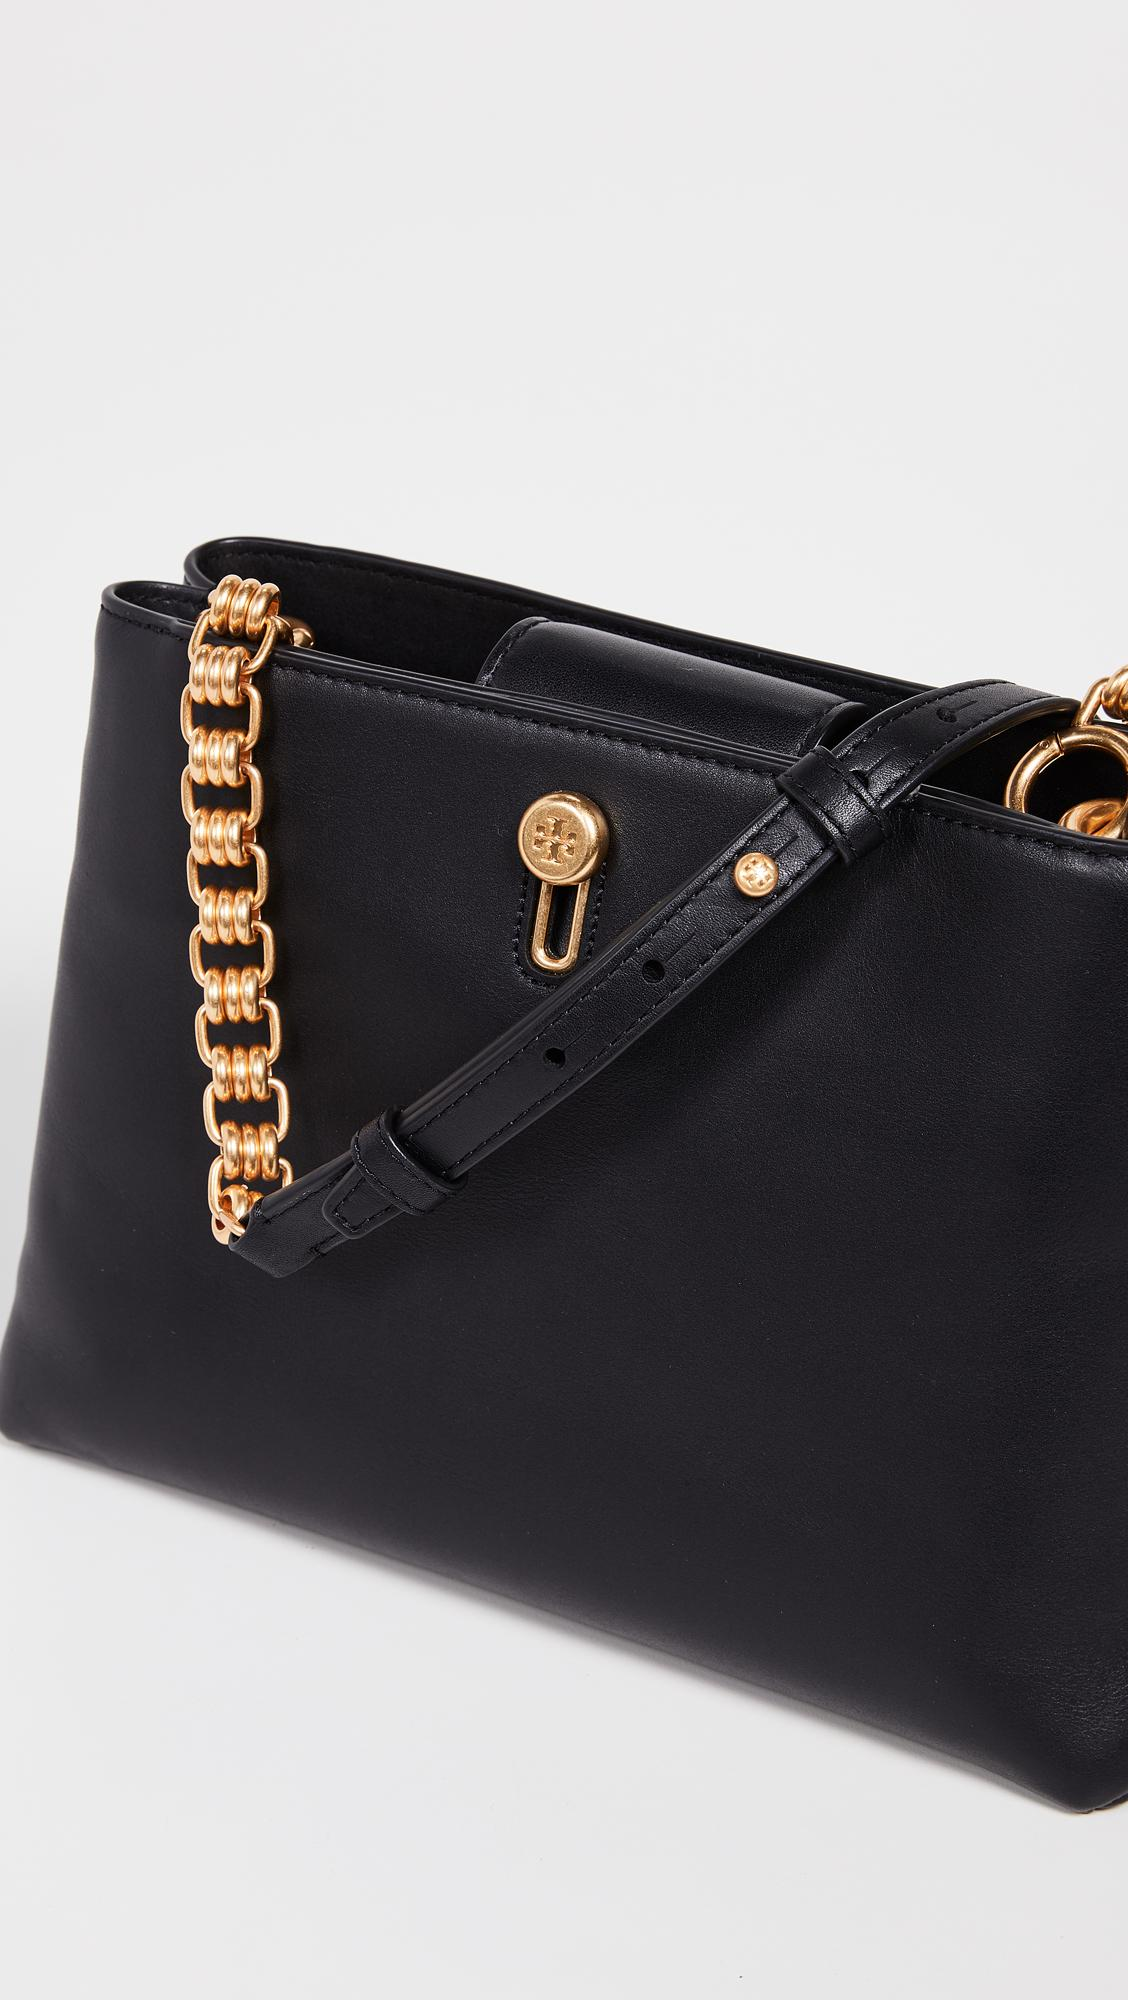 Tory Burch Leather Lily Chain Crossbody Bag In Black Lyst